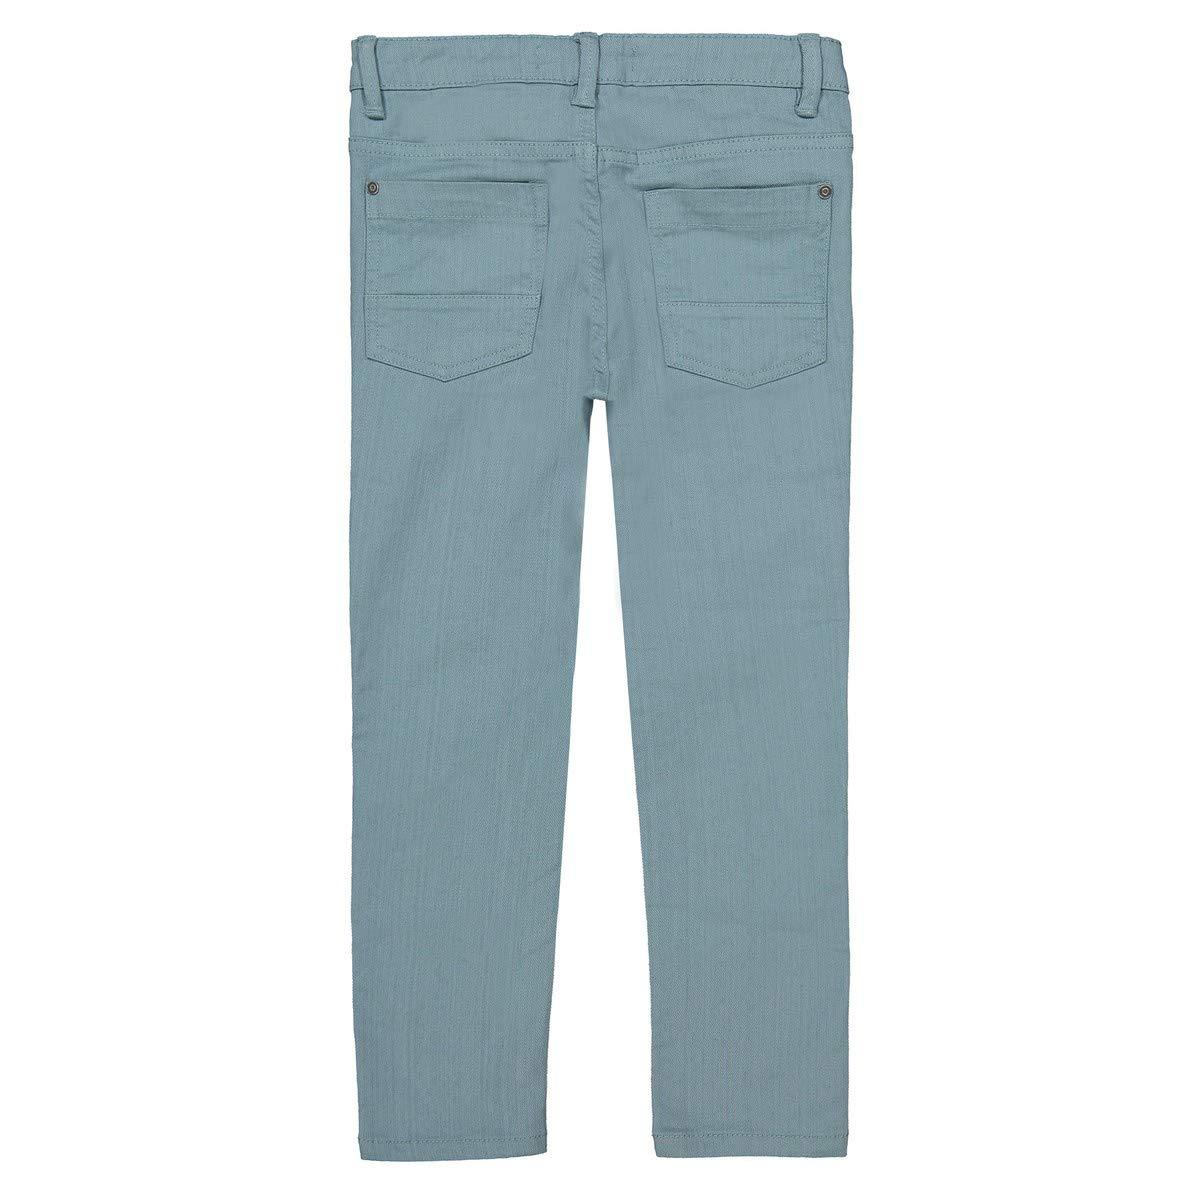 3-12 Years La Redoute Collections Big Boys Slim Fit Jeans for Fuller Fit